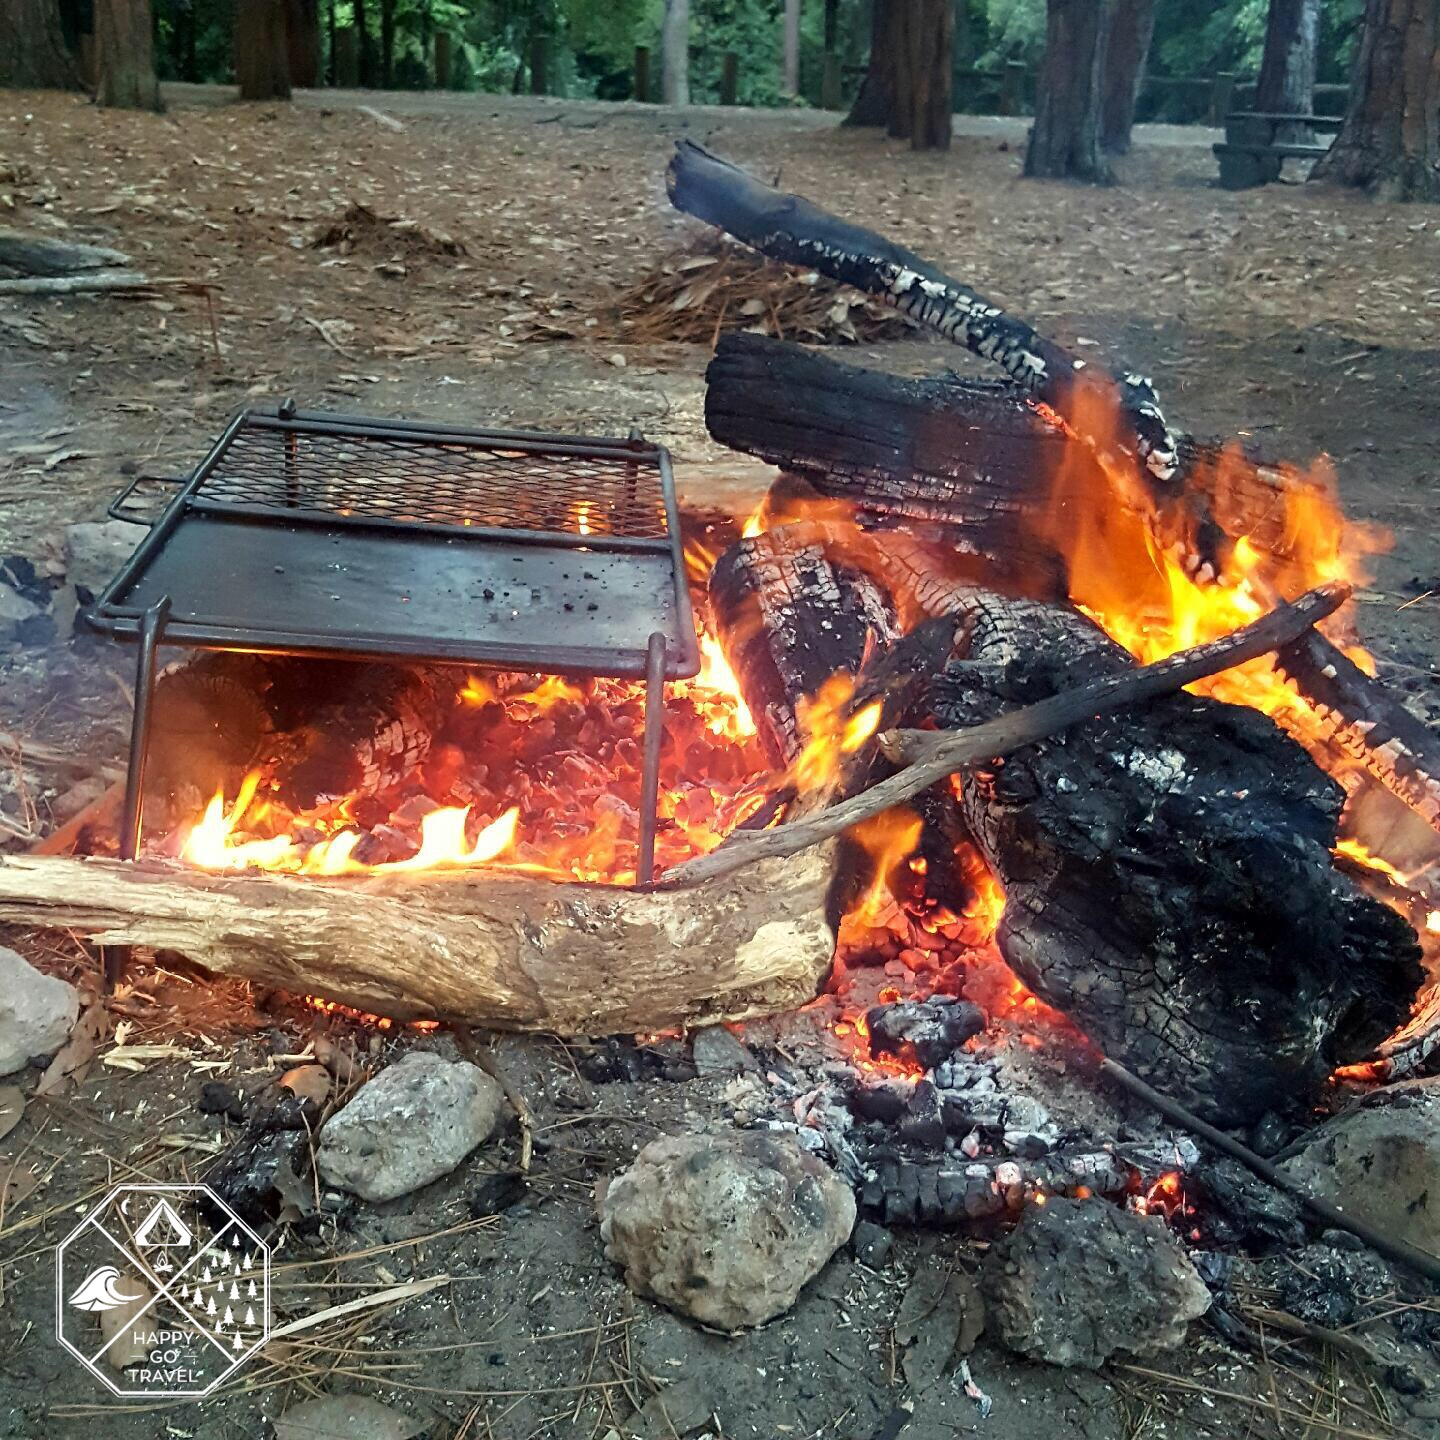 How to build a campfire | camp BBQ on the coals